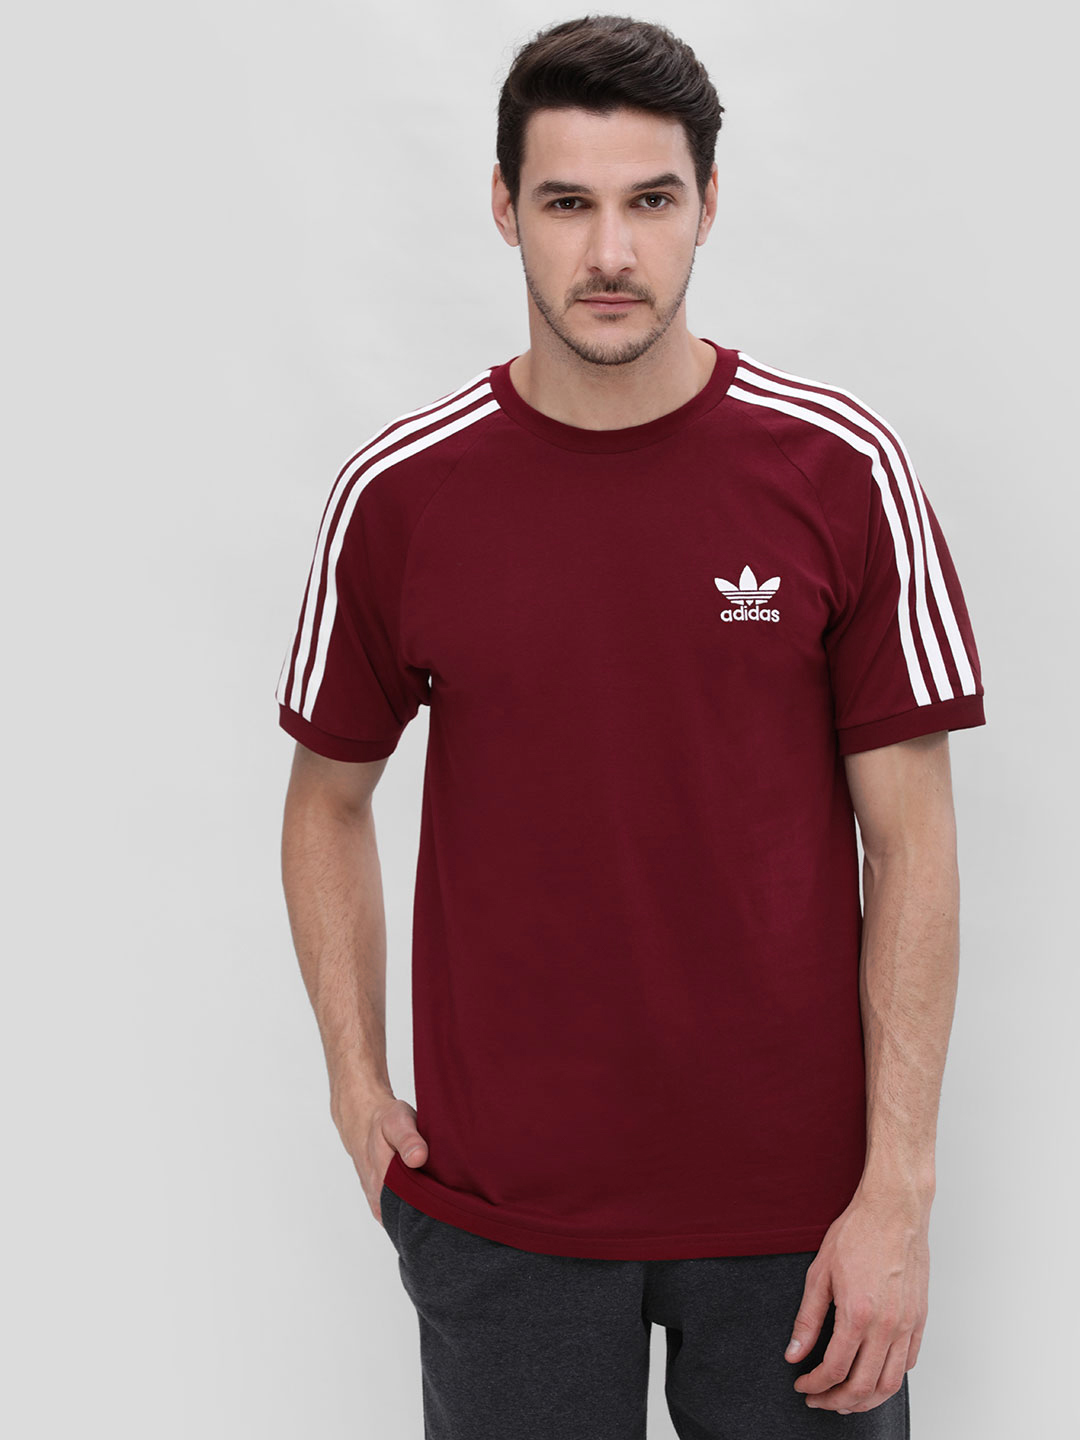 Adidas Originals Red Crew Neck 3-stripes T-Shirt 1